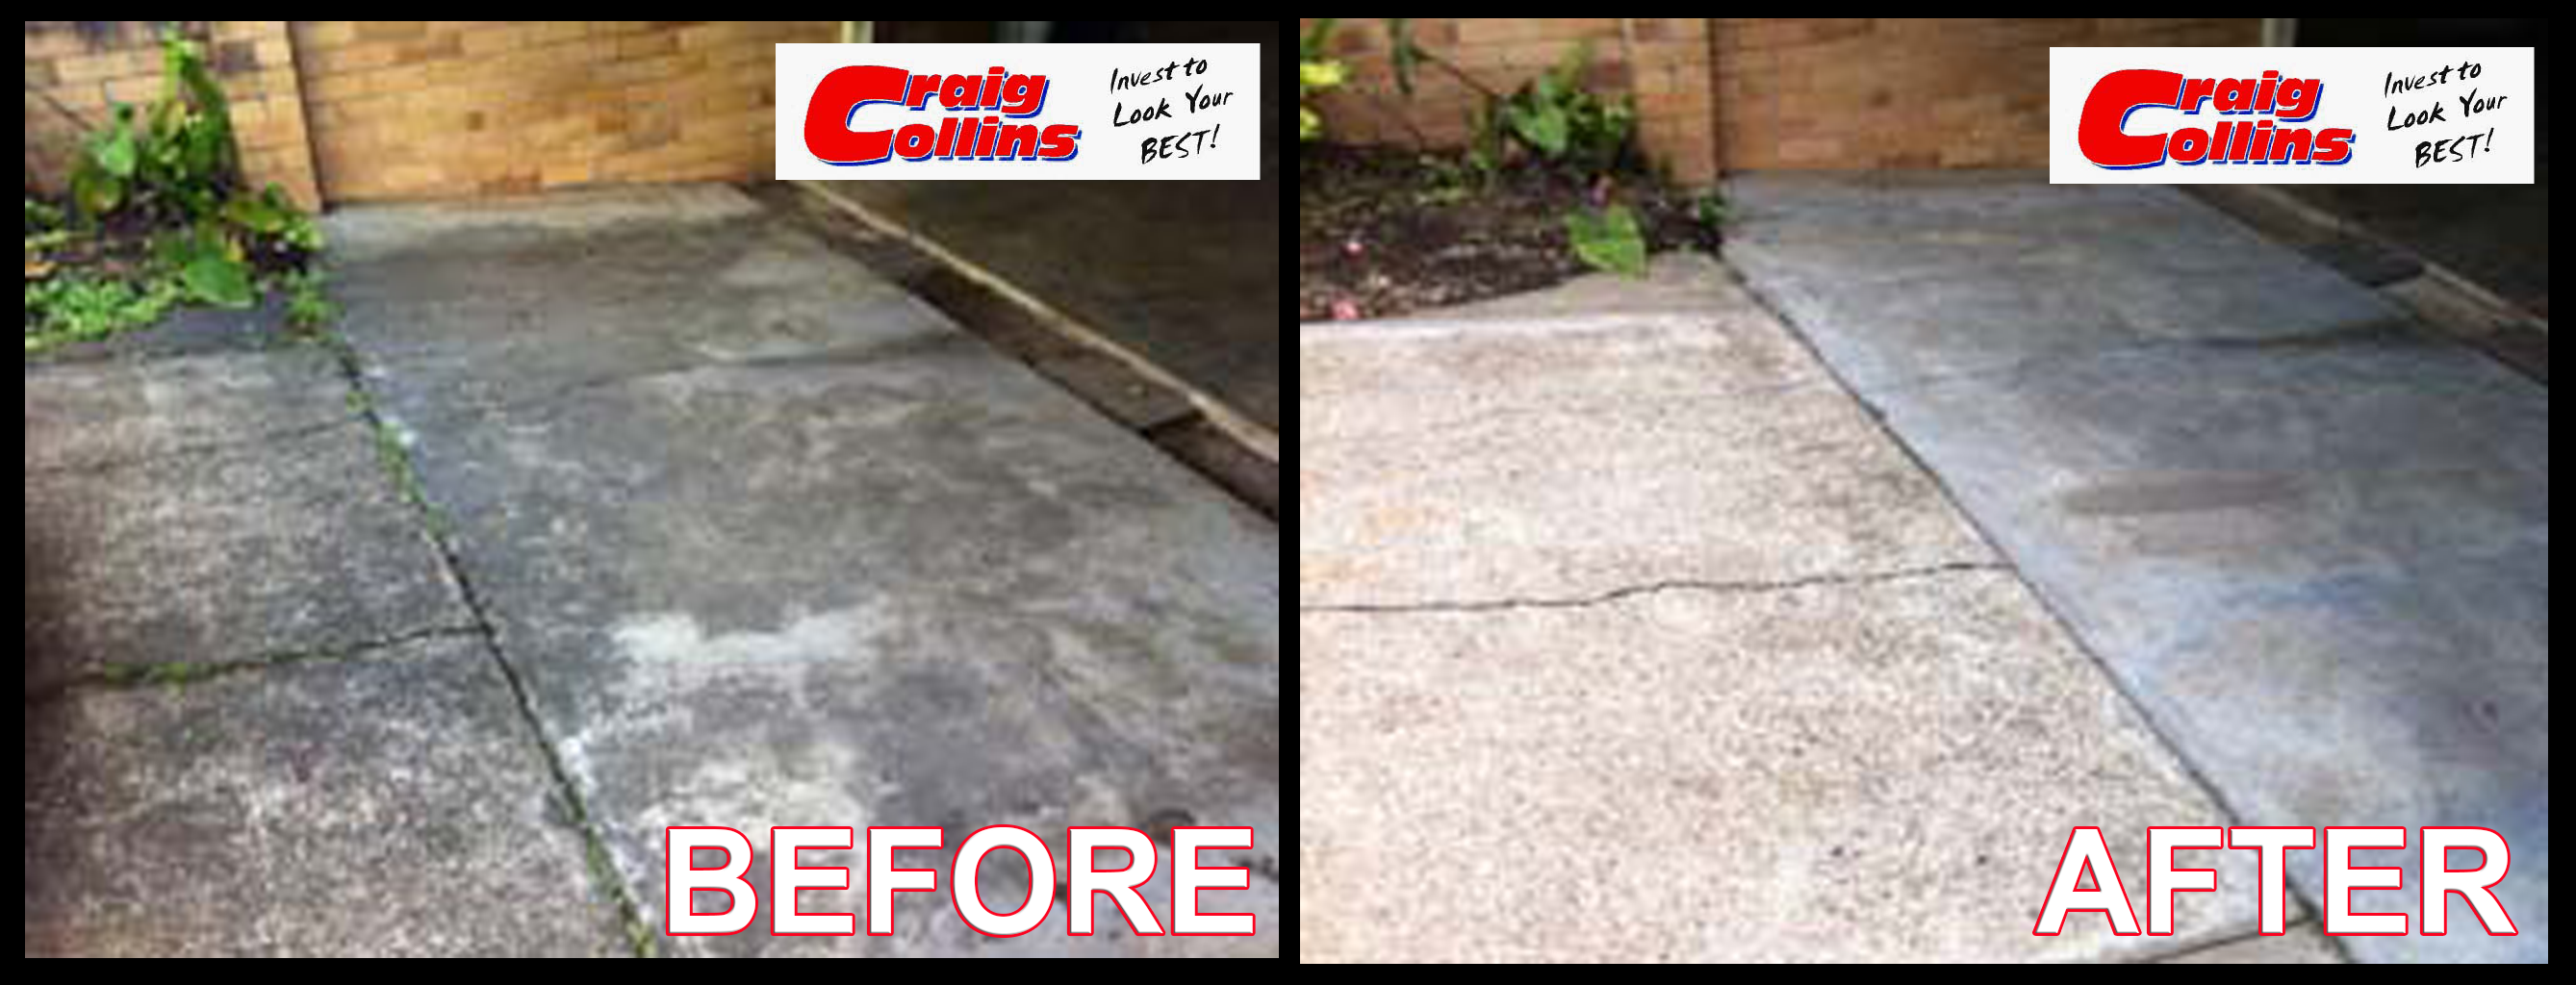 Pressure wash Before-after 2